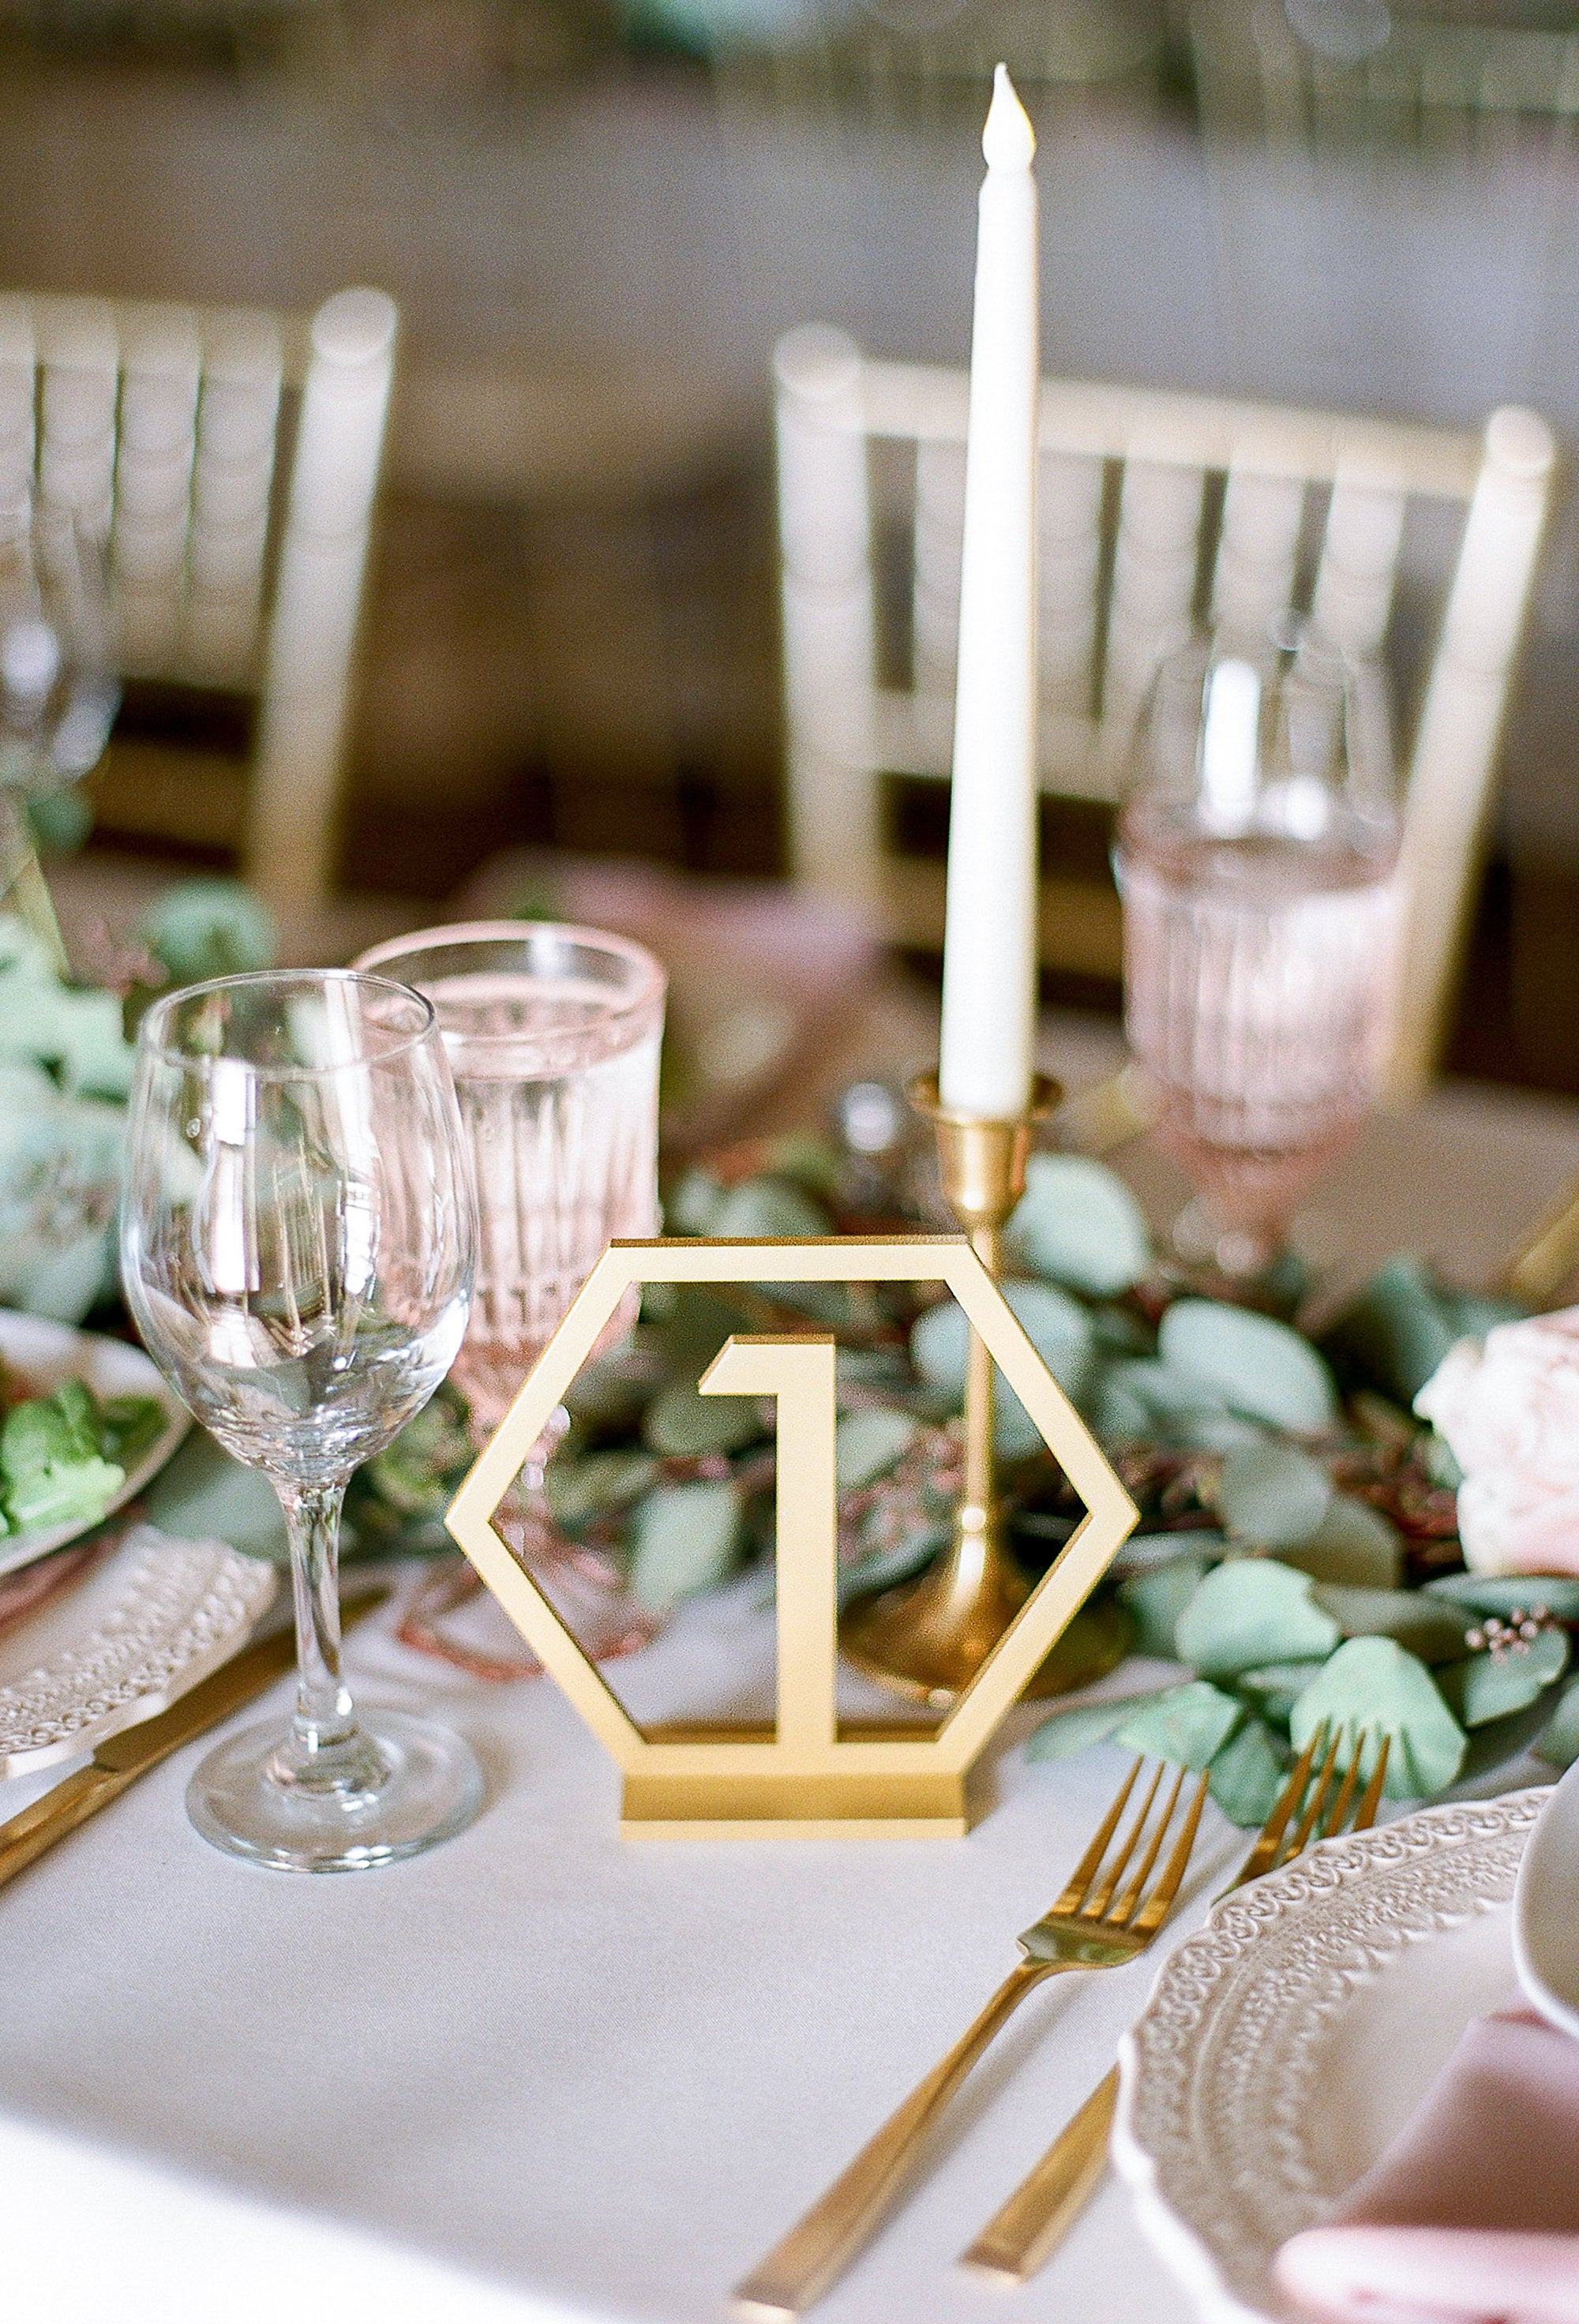 Geometric Table Numbers for Wedding, Wooden Laser Cutout Hexagon Table Numbers Wedding Decor, Boho Centerpiece Table Decor.jpg